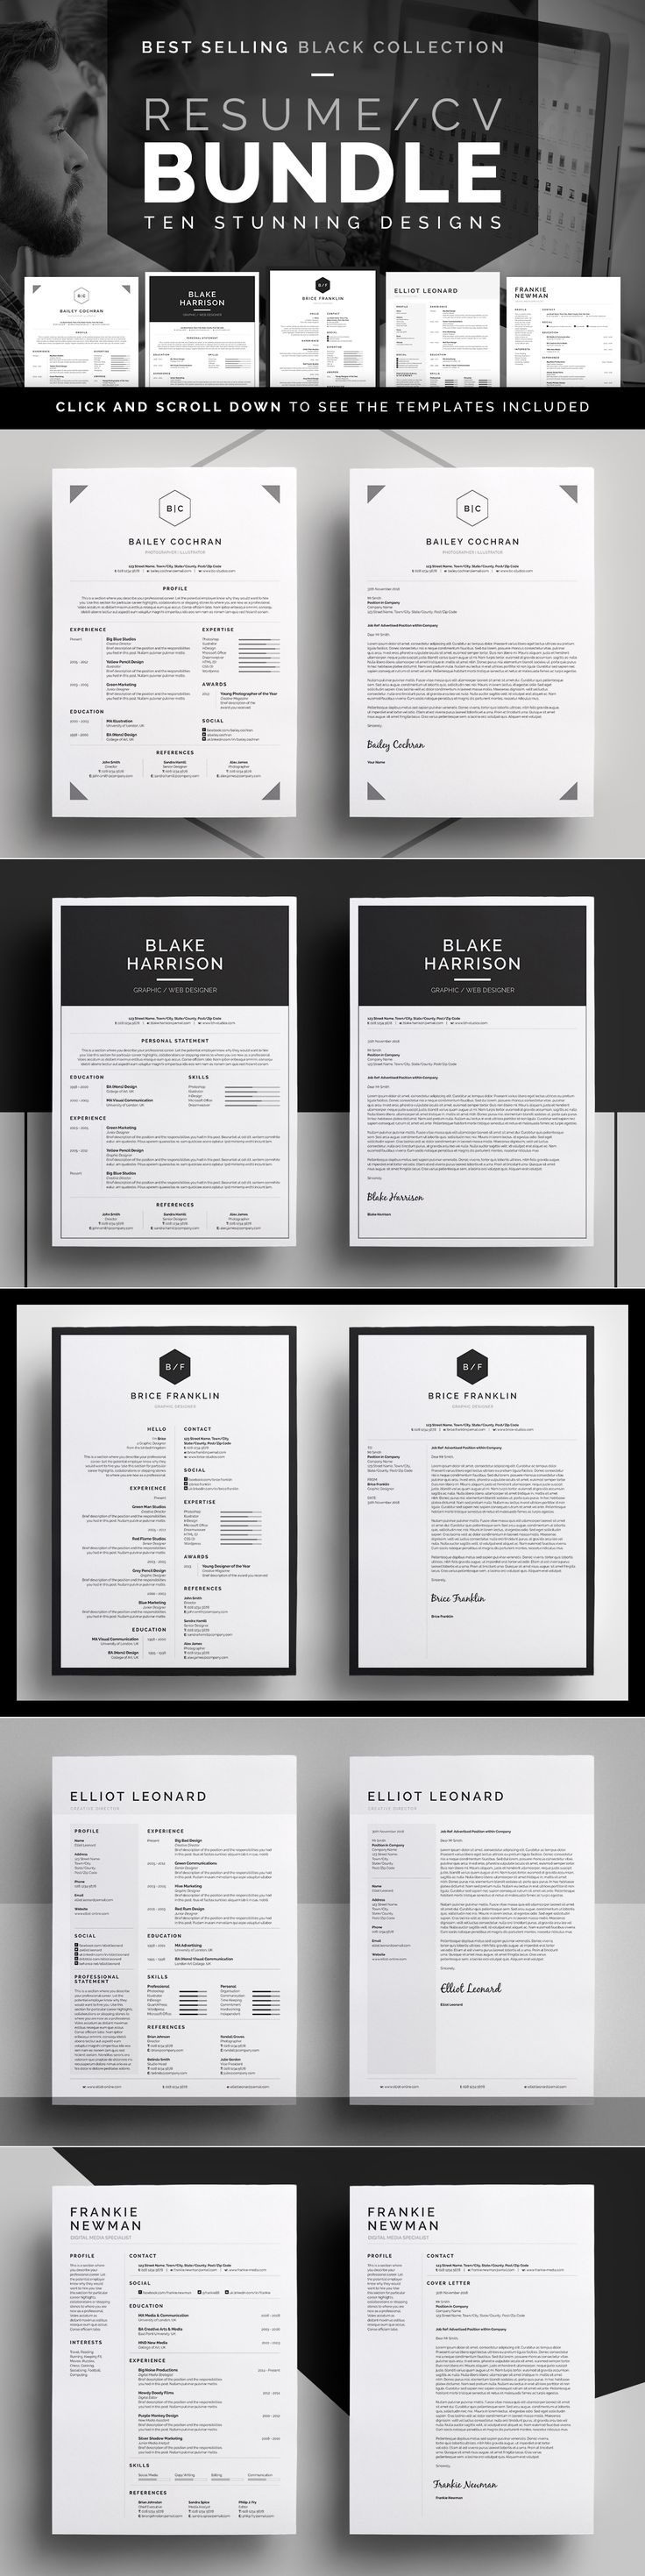 resumecv bundle cover letters business cards customizable templates modern - Free Resume Cover Letters